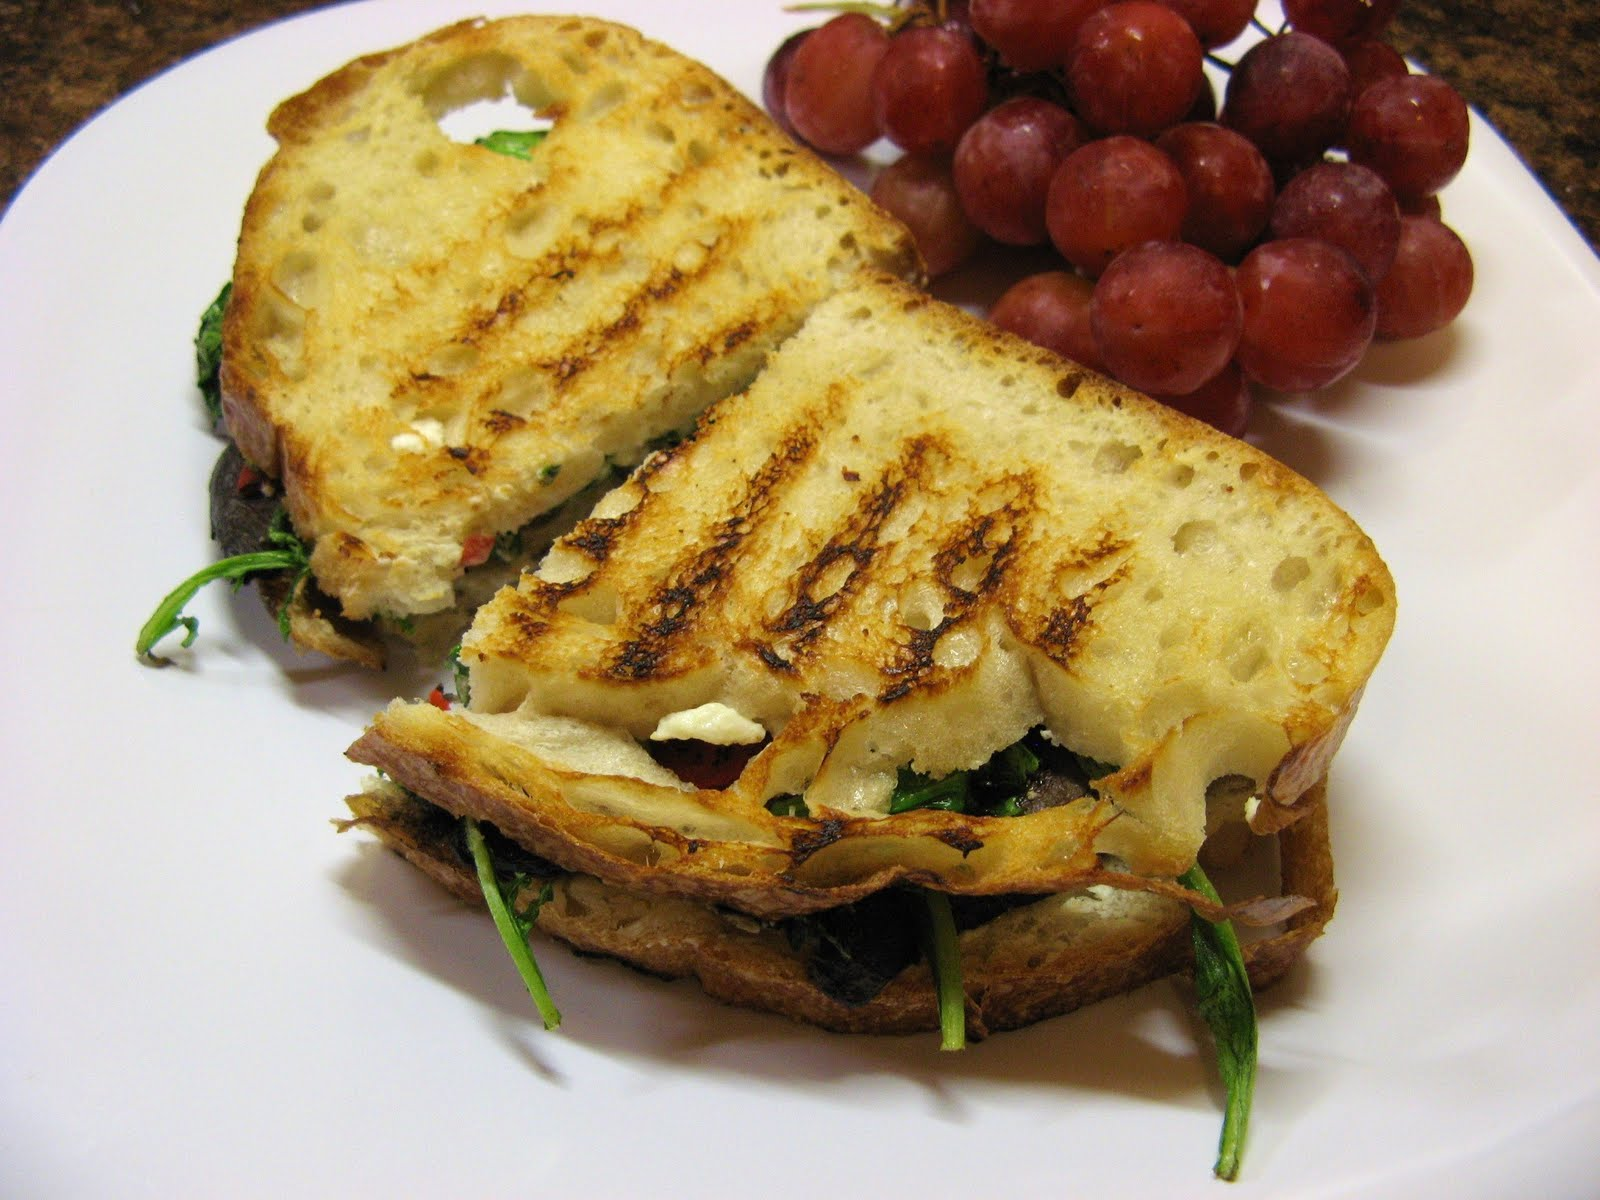 The Well-Fed Newlyweds: Grilled Portobello Paninis